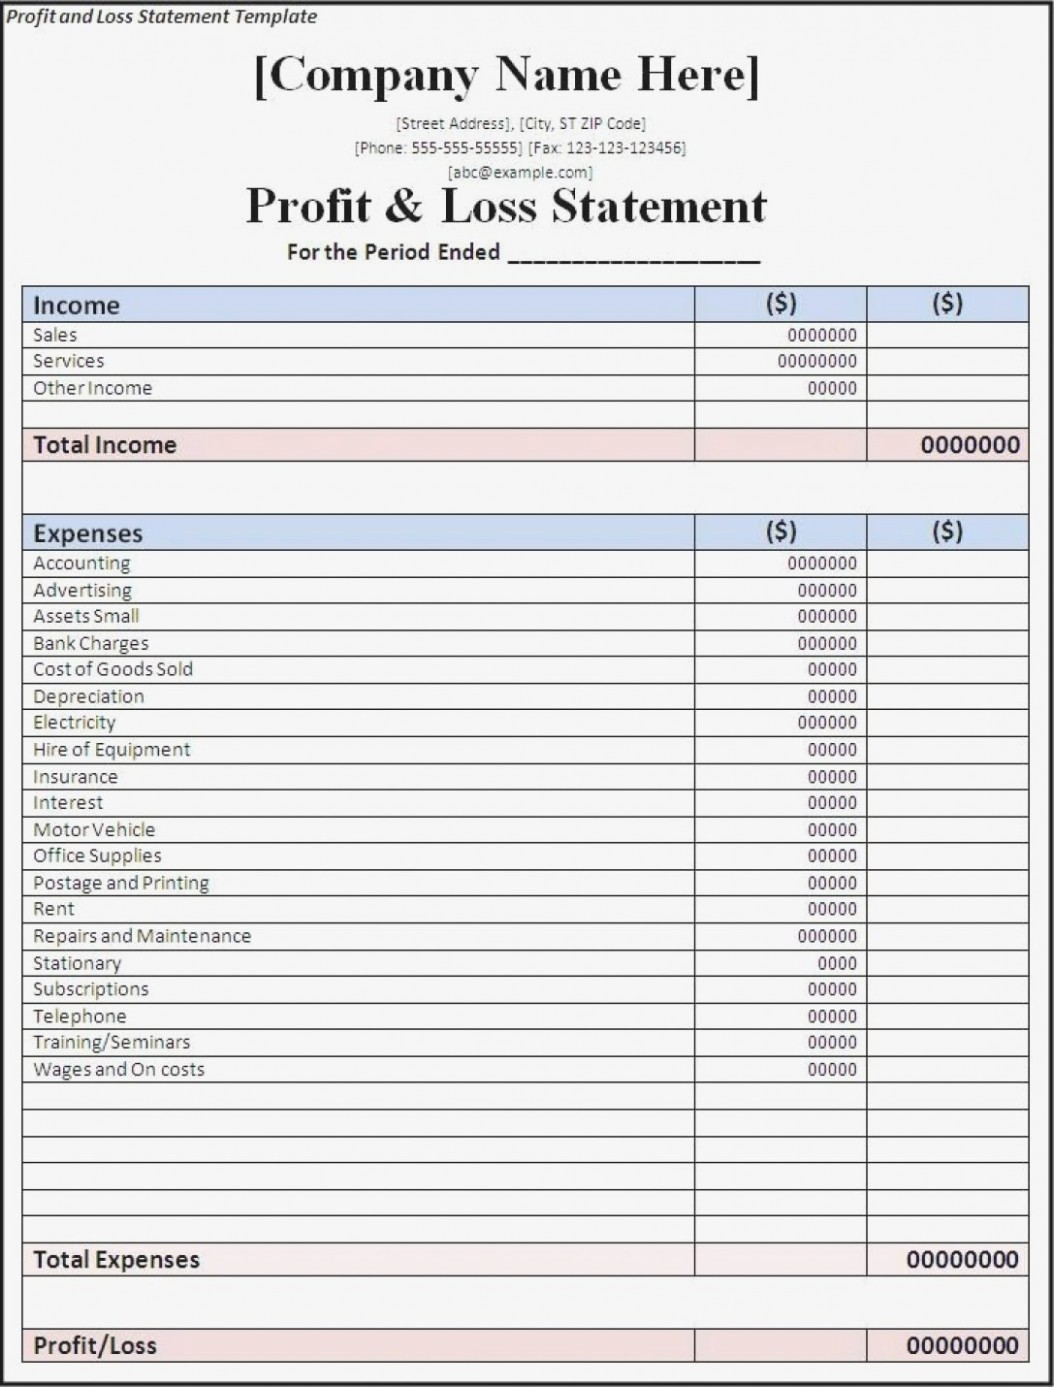 Business Profit and Loss form Unique the 13 Mon Stereotypes when It Es to